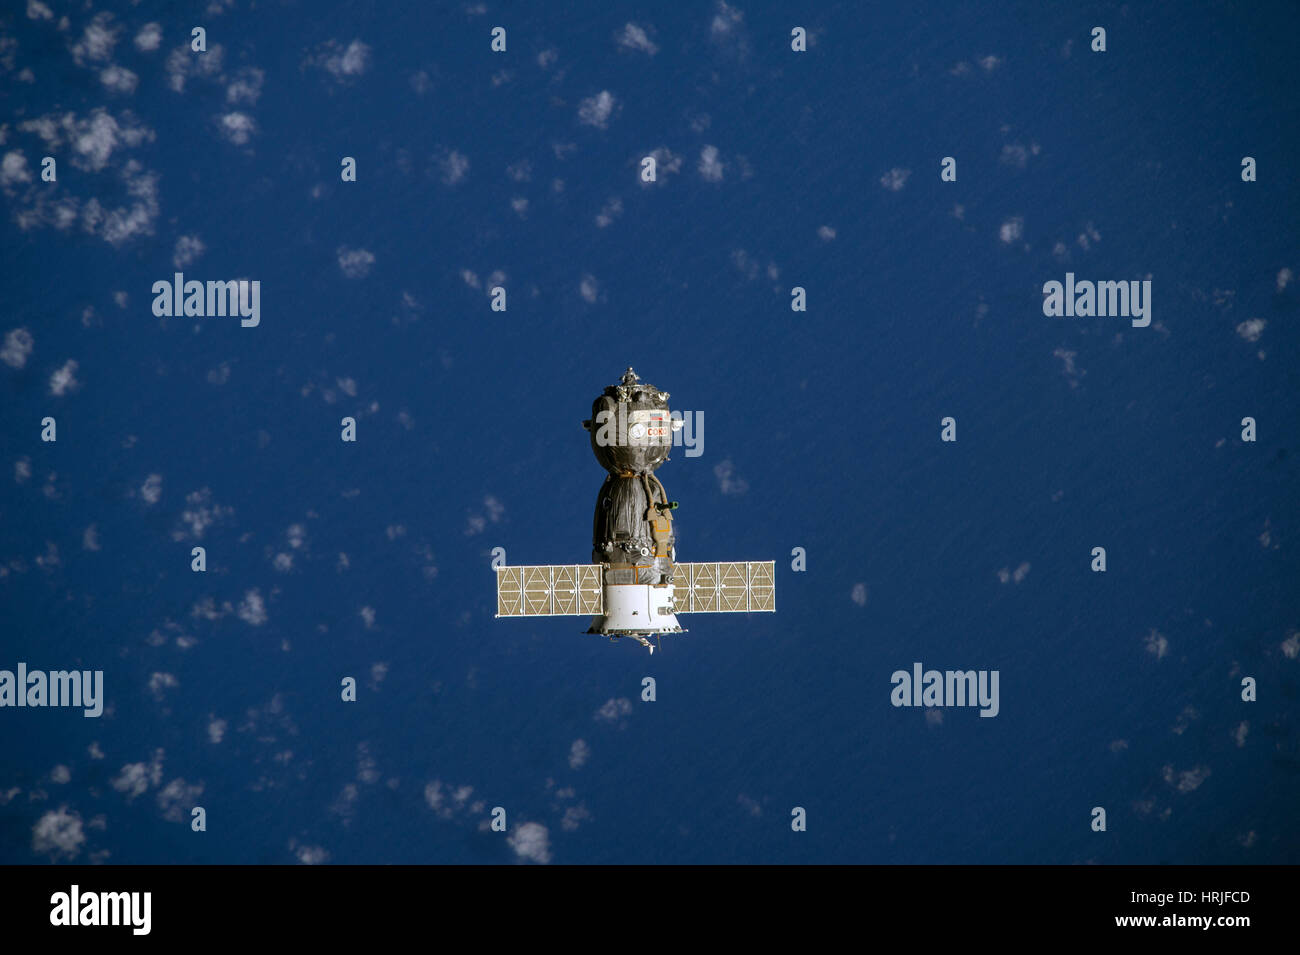 Soyuz Heads Back To Earth 2014 - Stock Image